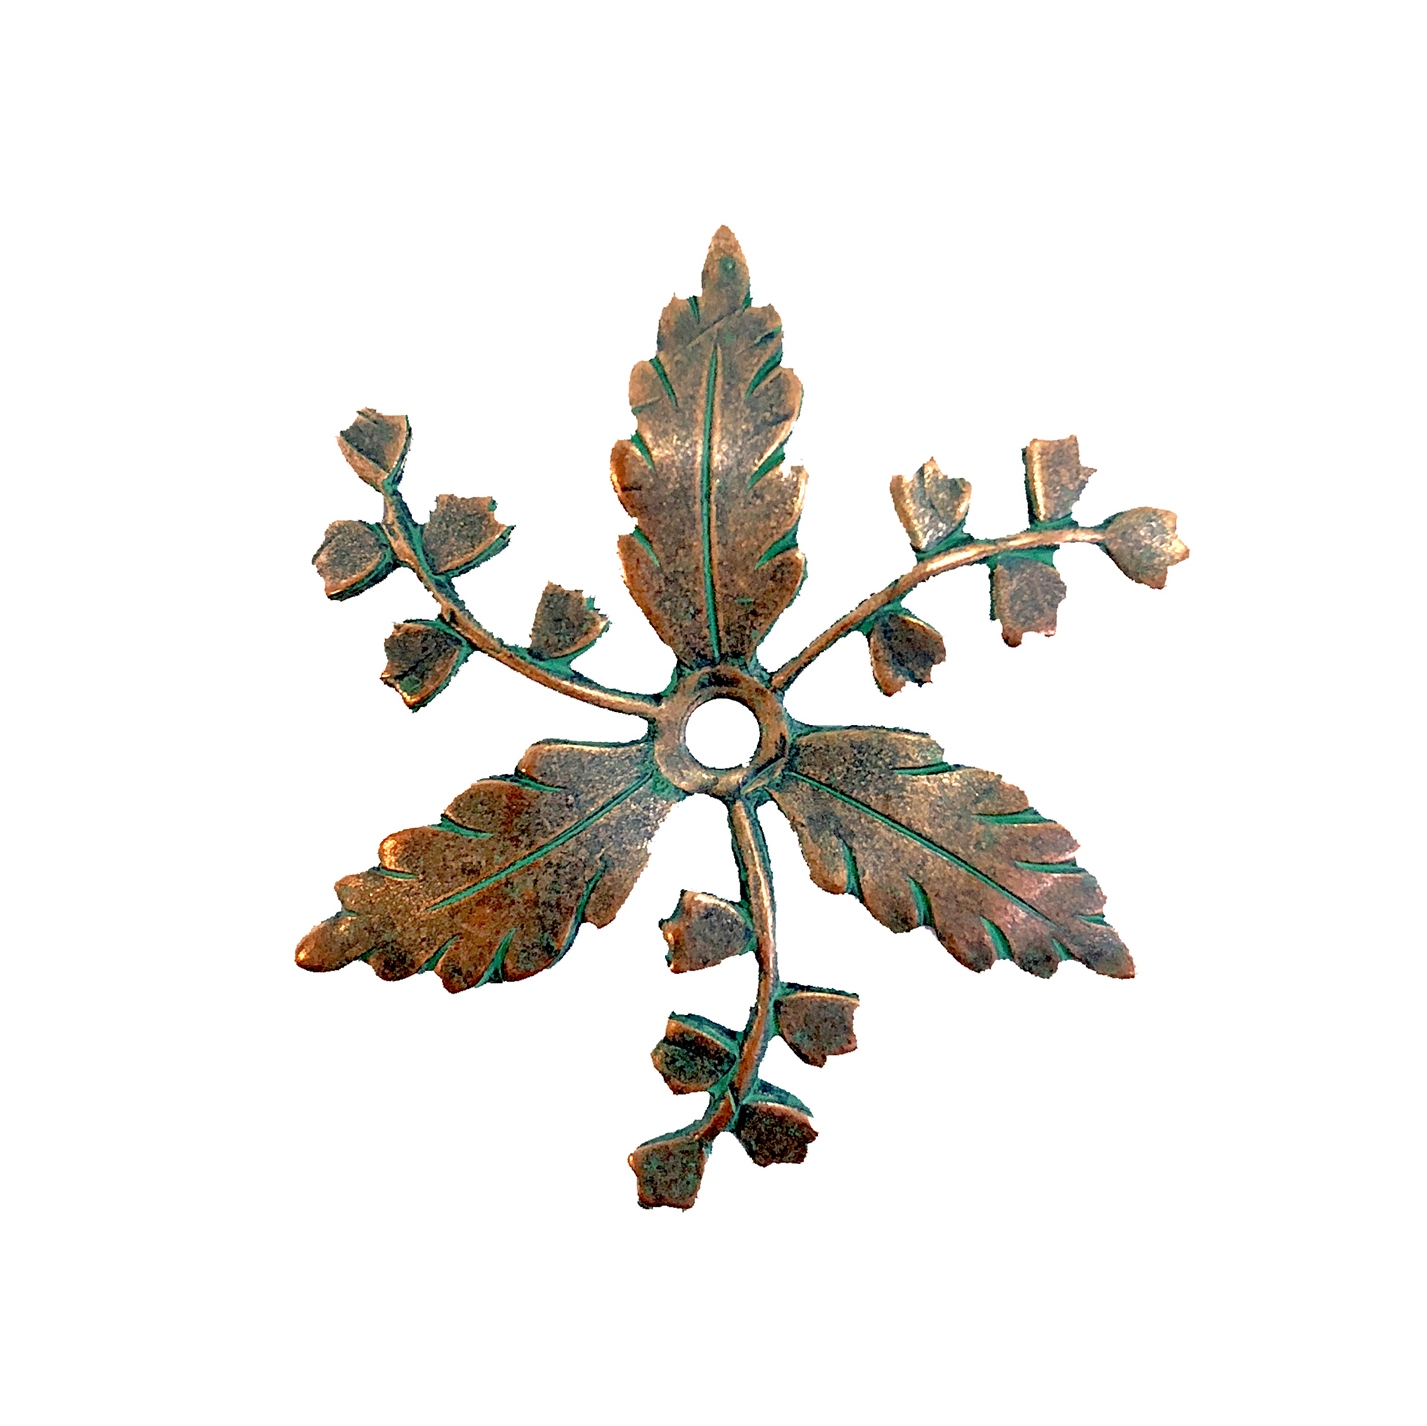 brass leaves, flowers, aqua copper patina, 08207, B'sue Boutiques, nickel free jewelry, US made brass jewelry, beading supplies, drilled leaves, beading leaves, vintage jewelry supplies, aqua, copper